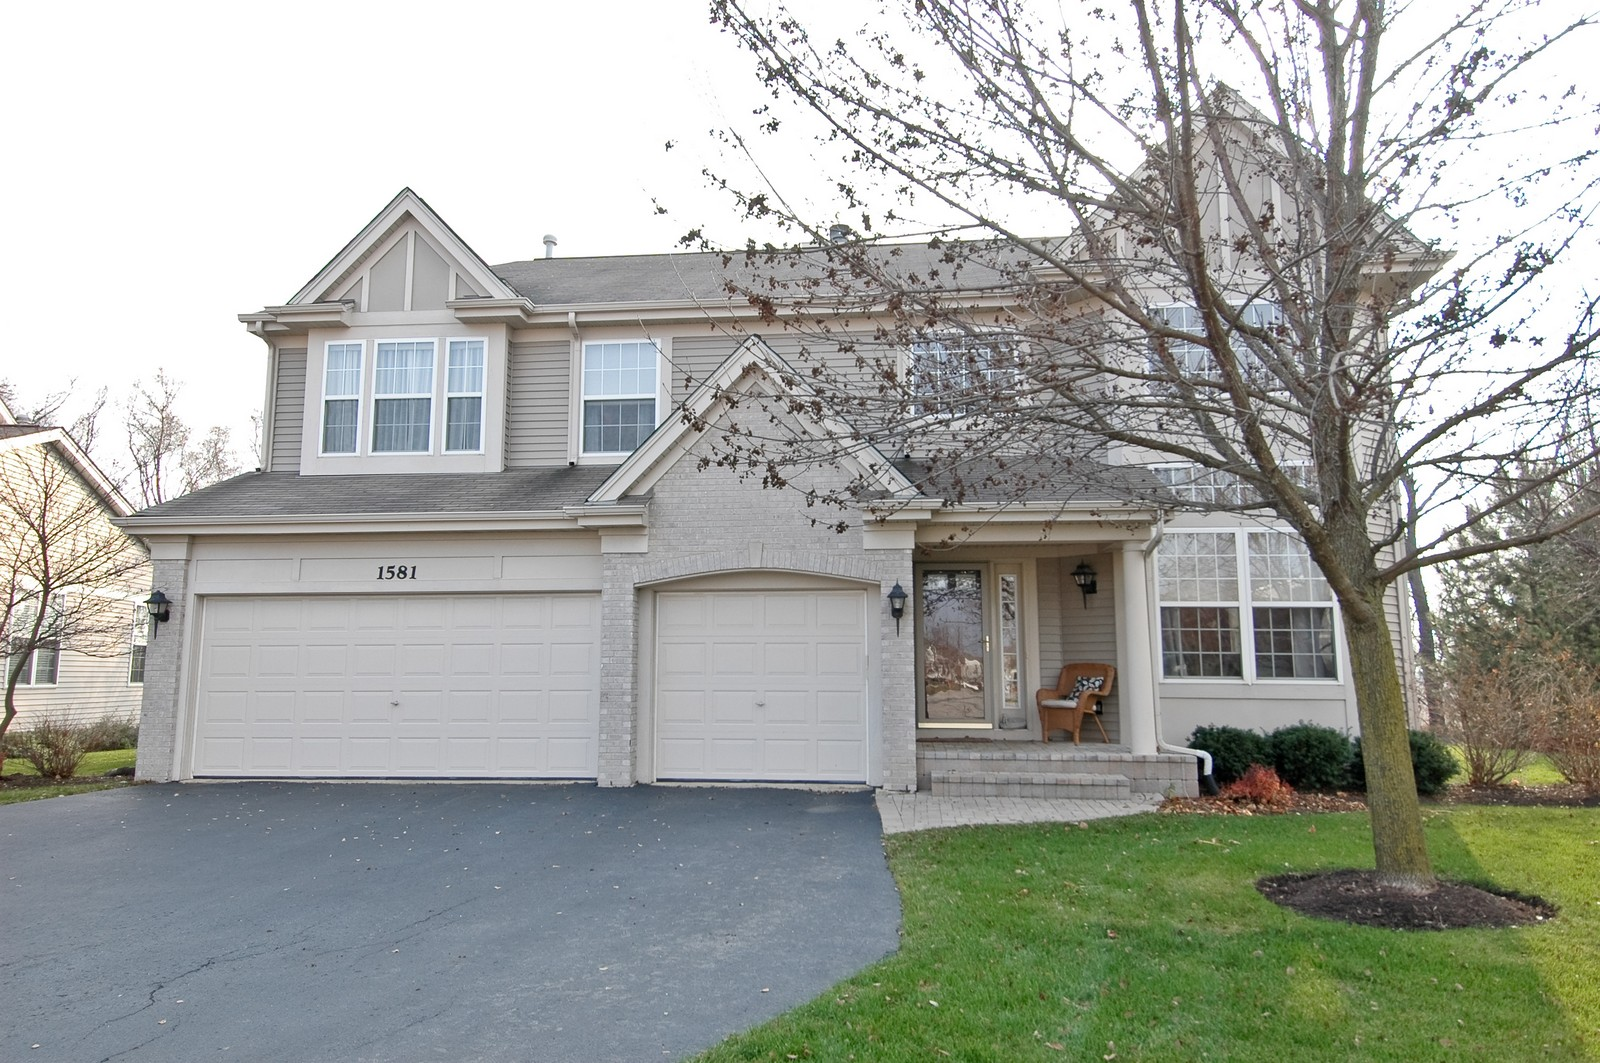 Real Estate Photography - 1581 Summerhill Ln, Cary, IL, 60013 - Front View